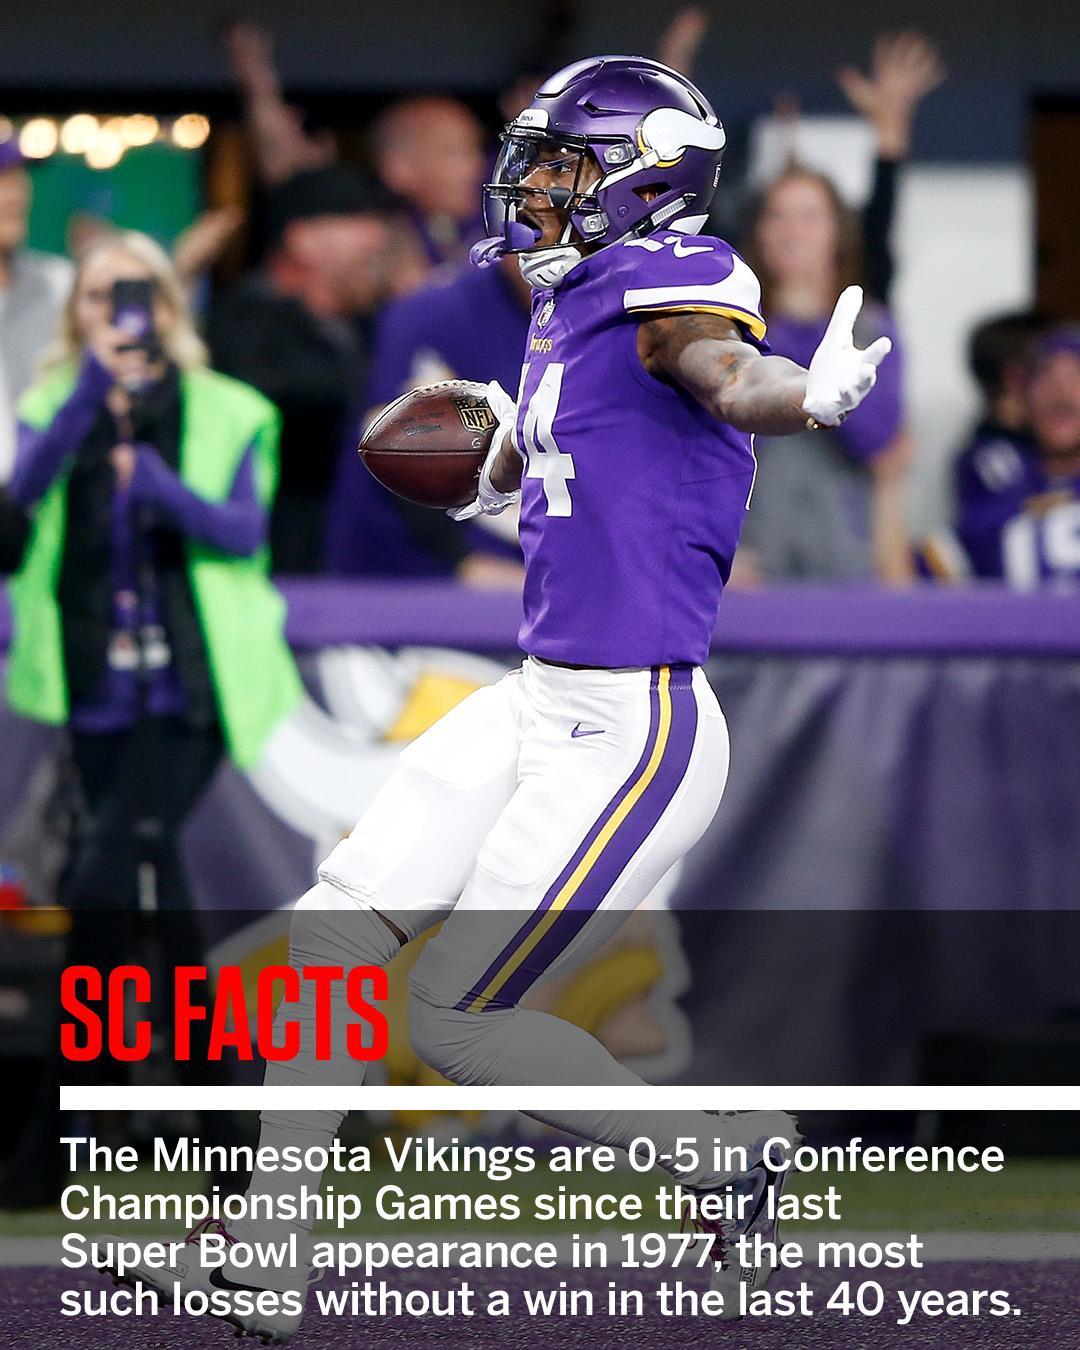 It's been a tough road to this point for the Minnesota Vikings.  (h/t @AdamSchefter) https://t.co/G4XoVKlTf5